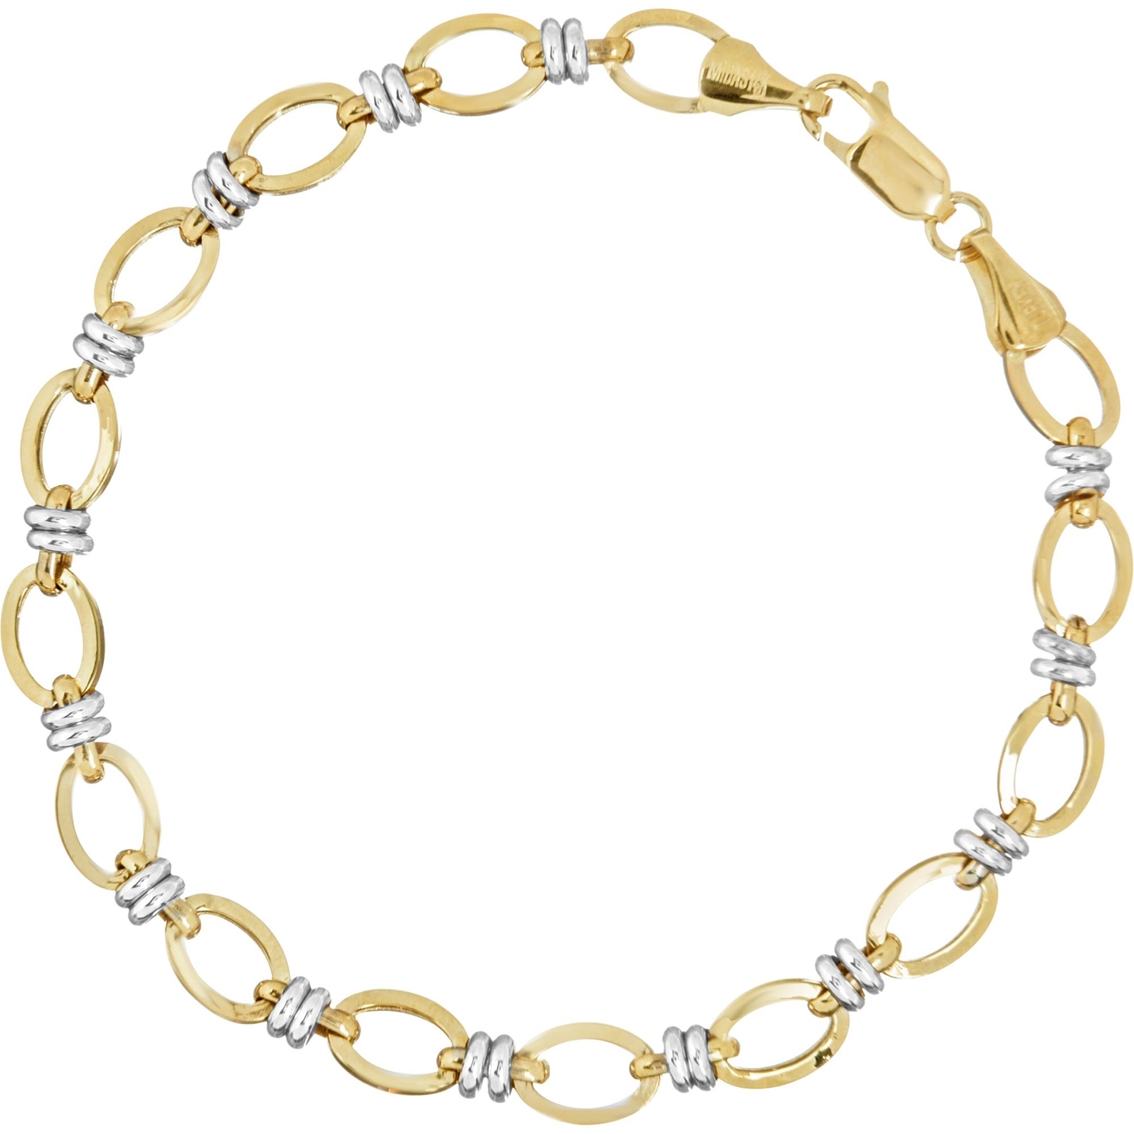 b9d0cf0902b80 14k Two Tone Gold Flat Oval Chain With Double White Link Bracelet ...